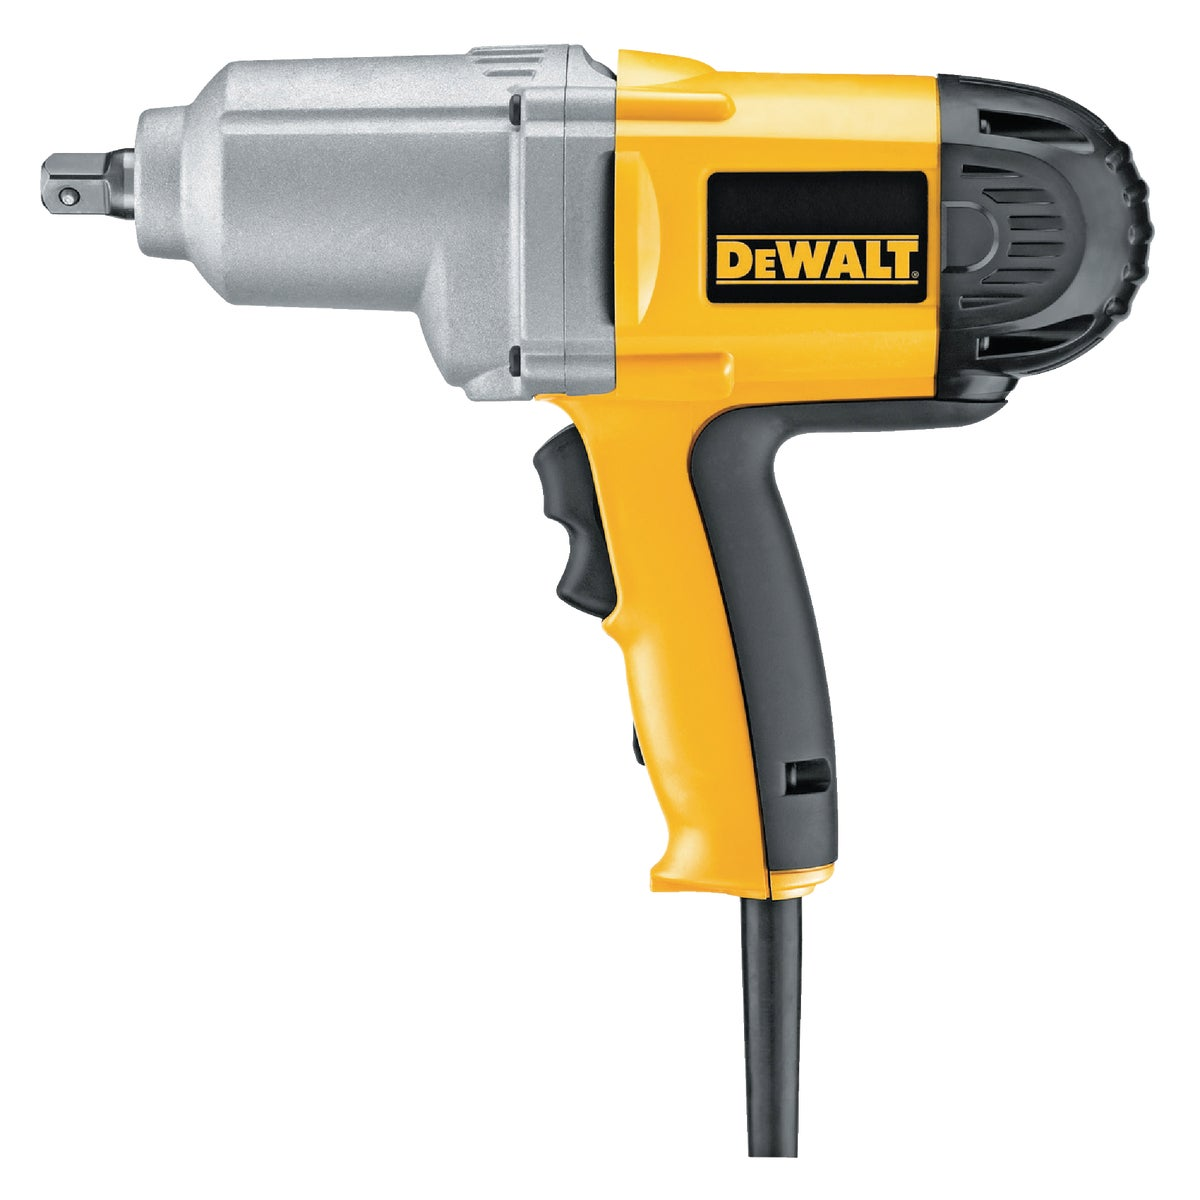 "1/2"" IMPACT WRENCH - DW292 by DeWalt"